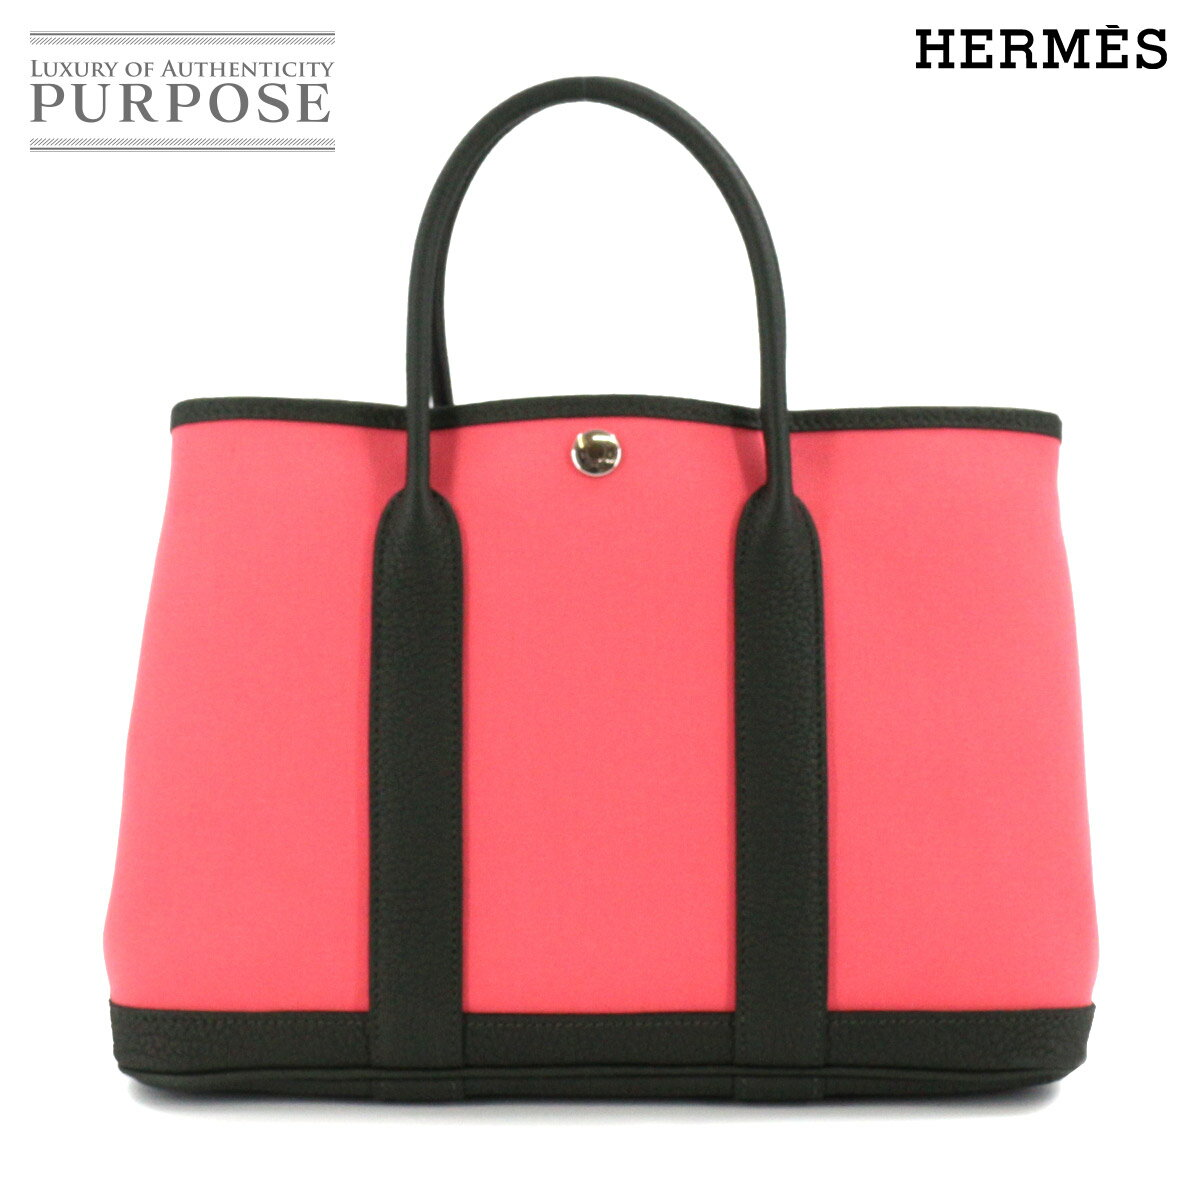 HERMES garden party price HERMES TPM A